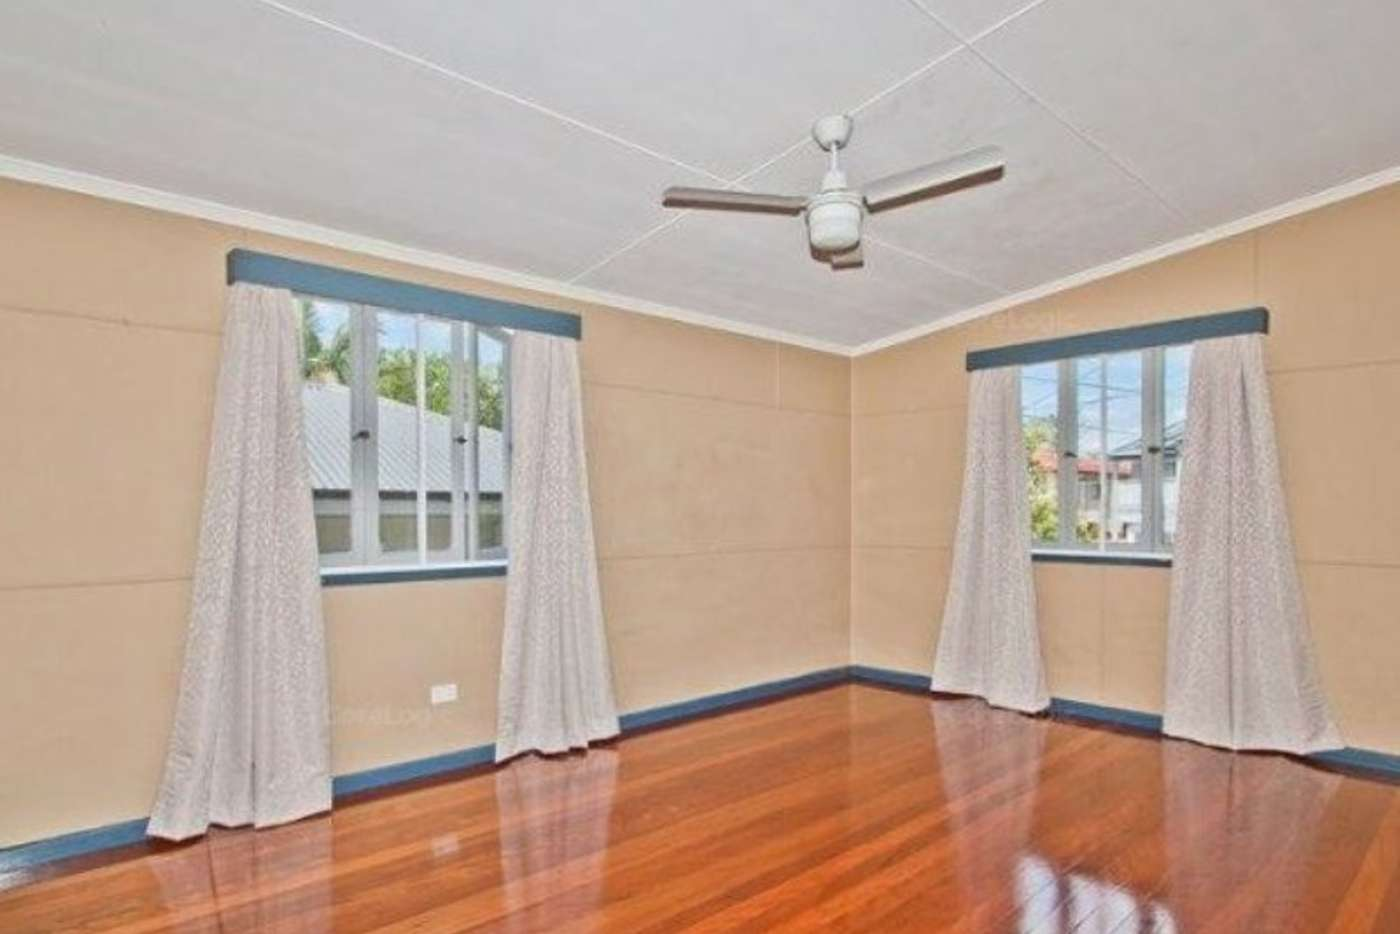 Sixth view of Homely house listing, 29 Cobden Street, Moorooka QLD 4105